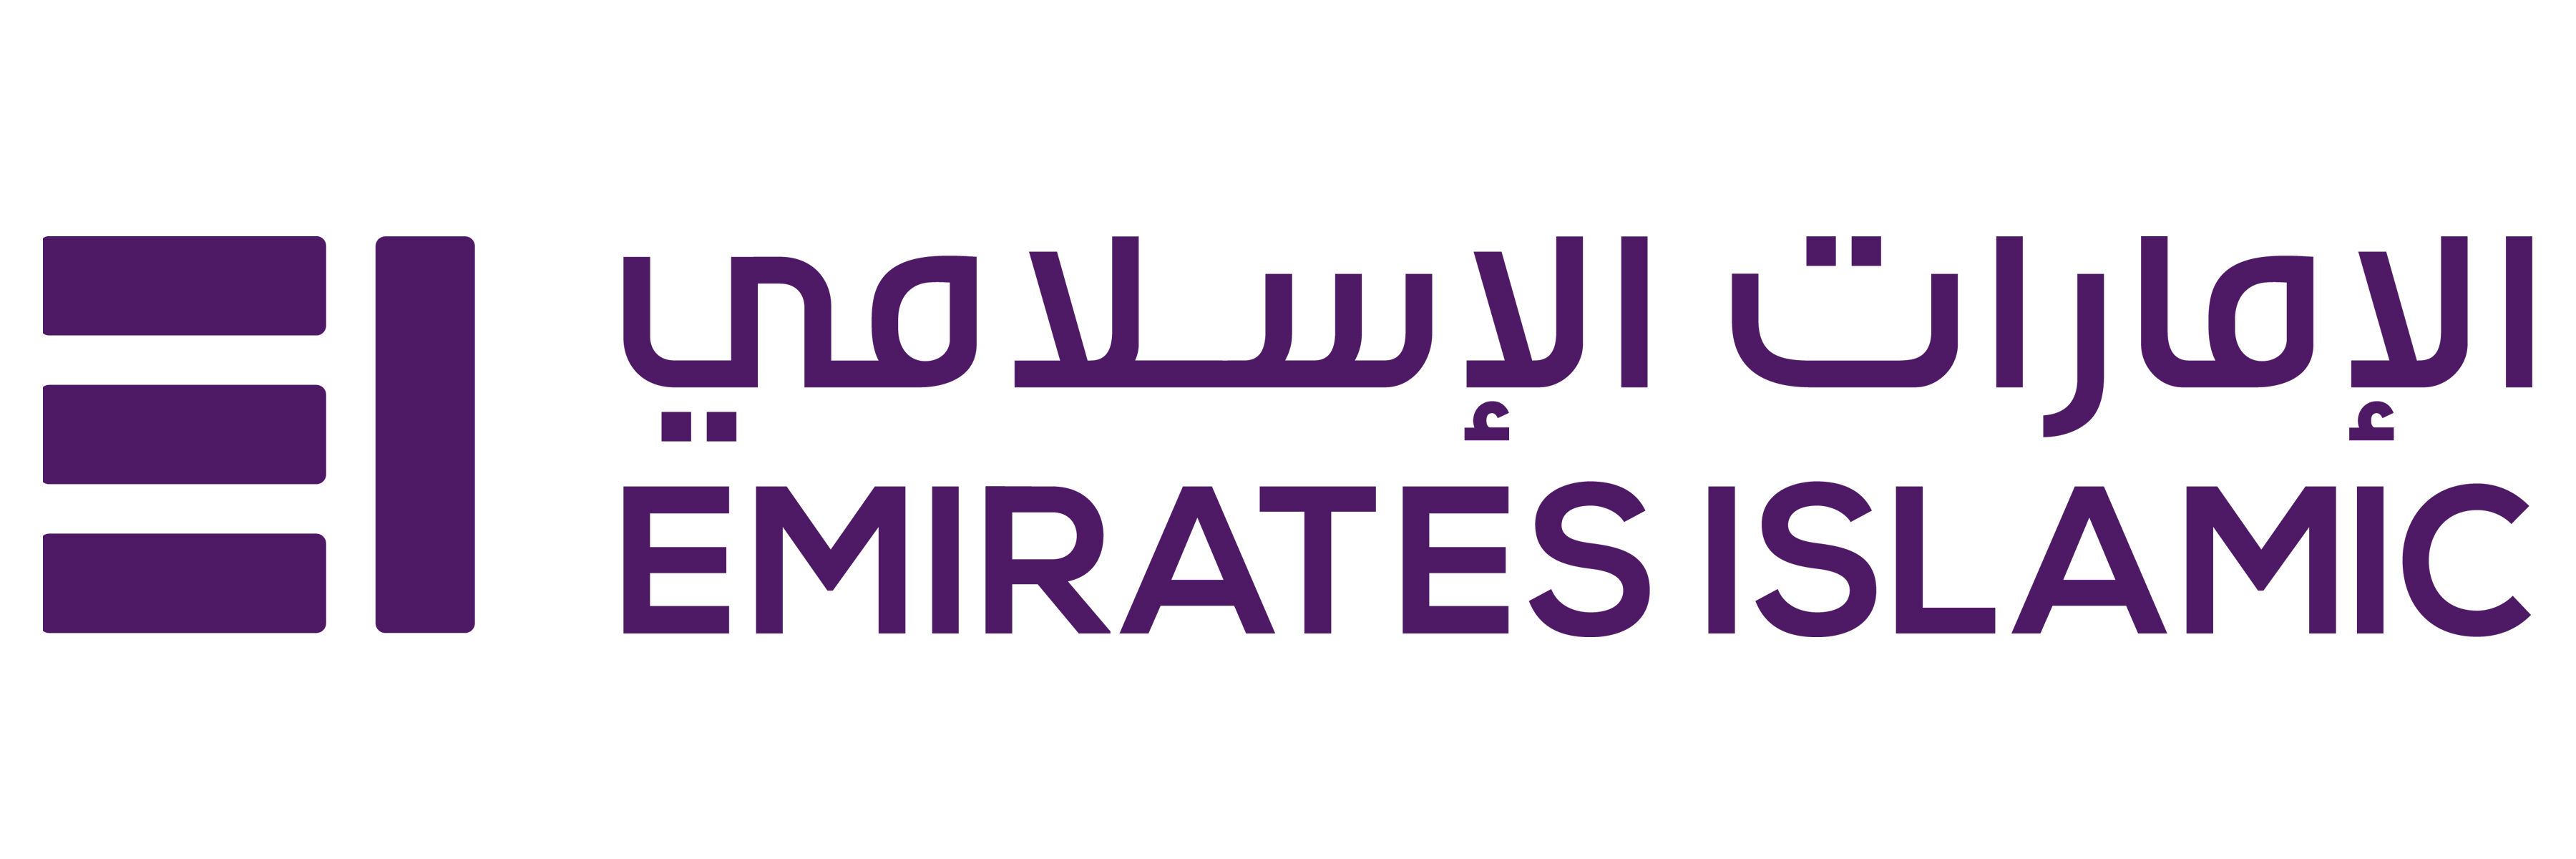 Mortgage rates Emirates Islamic